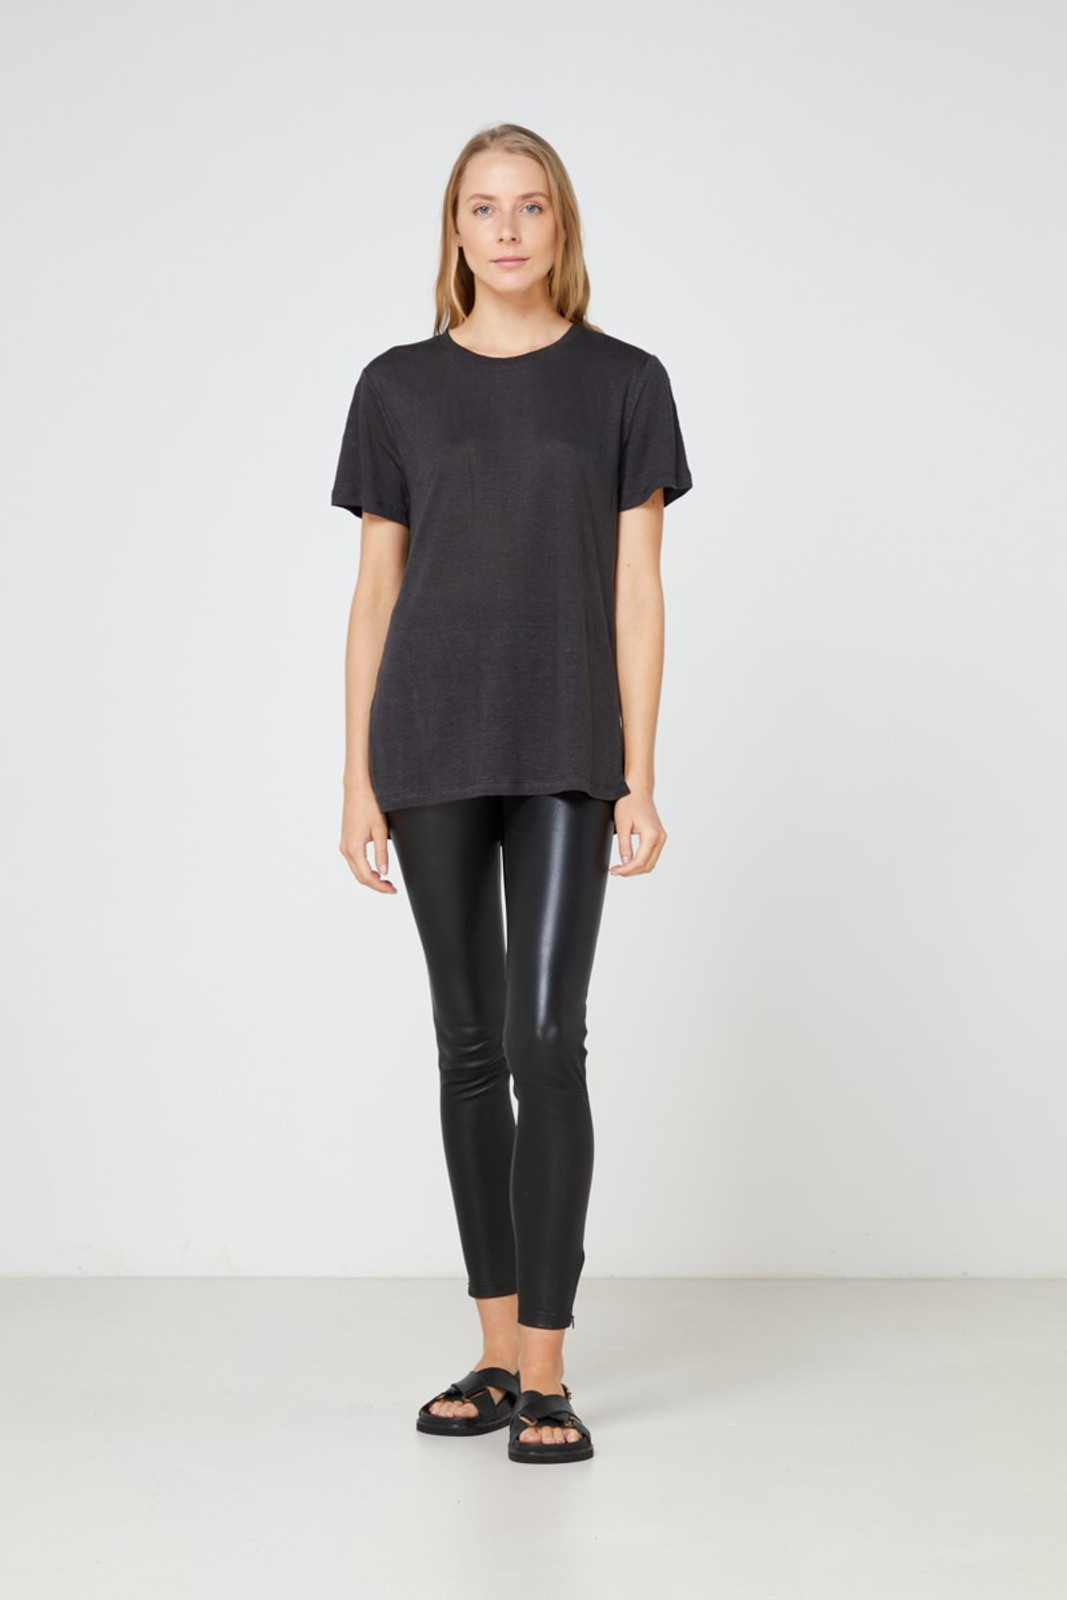 Elka Collective EC Linen Crew Neck Tee Black  2